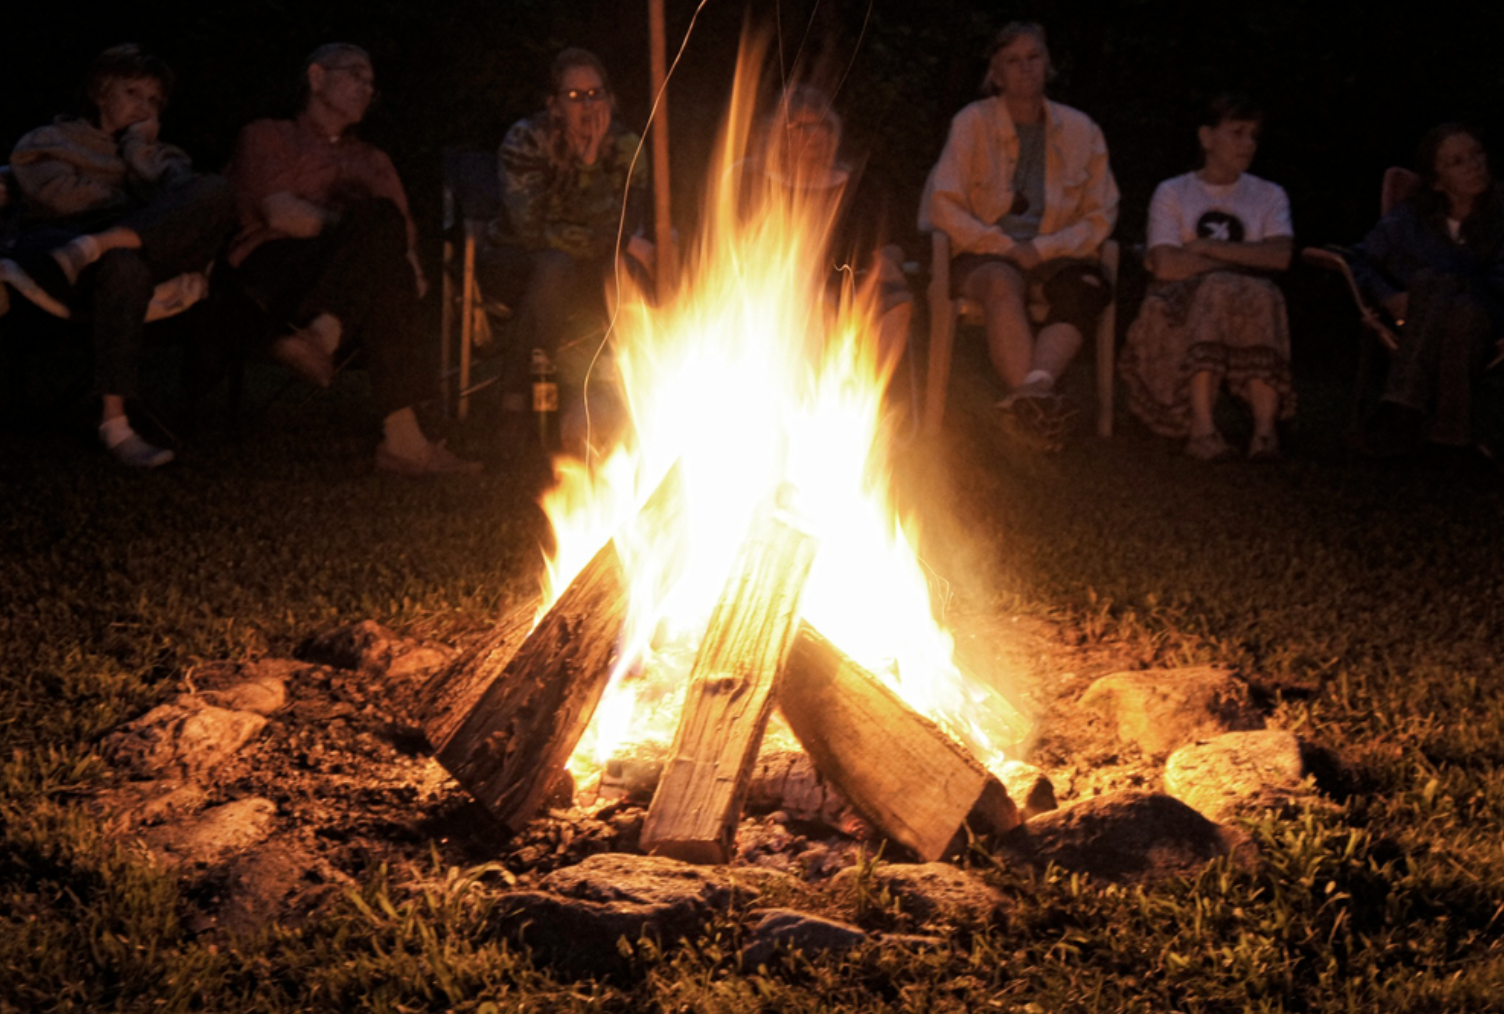 Sacred Fire at Royal City Park in Guelph. Credit: Adam A. Donaldson